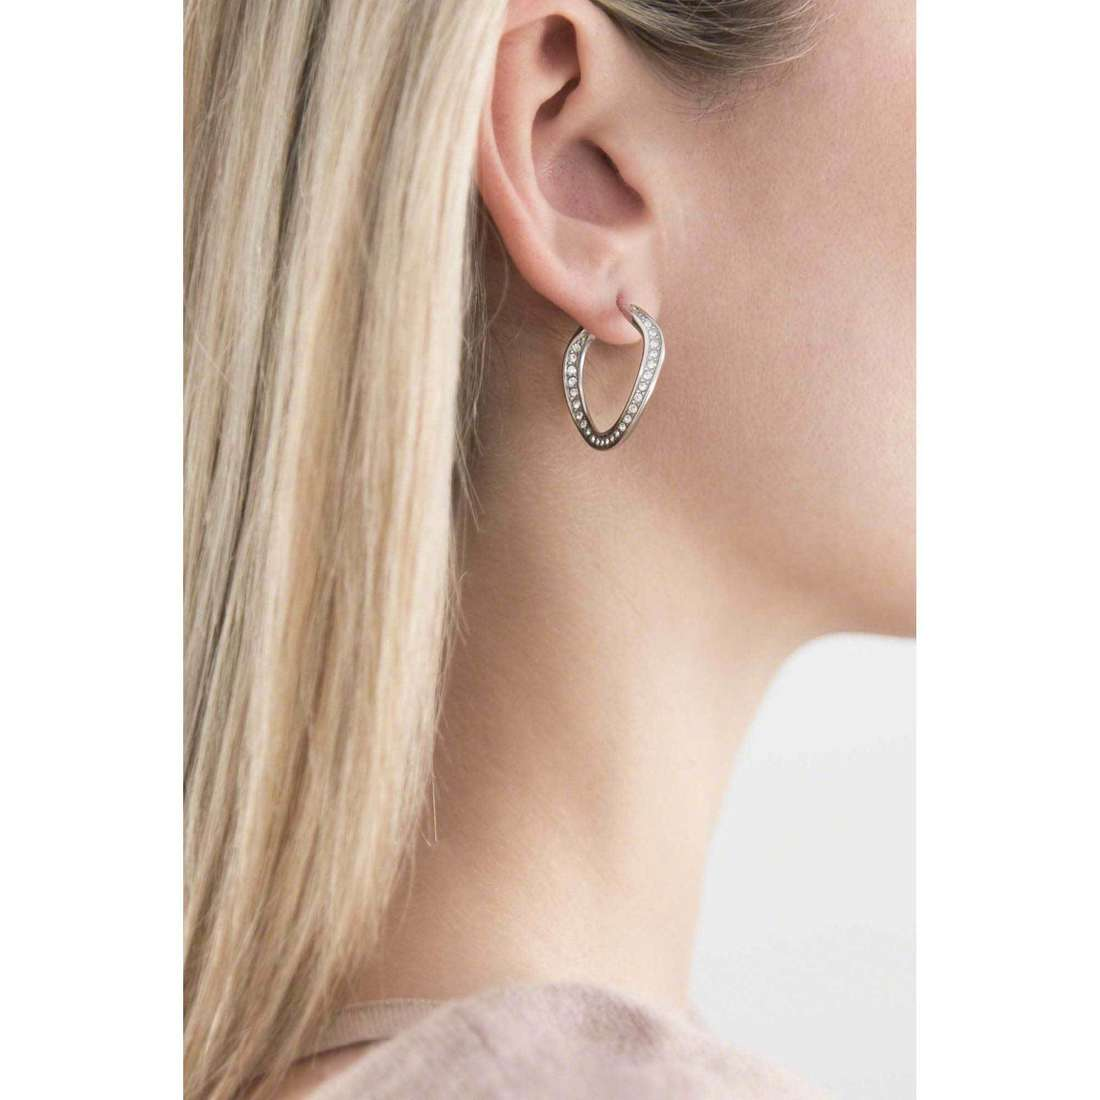 Fossil earrings woman JF01144040 indosso